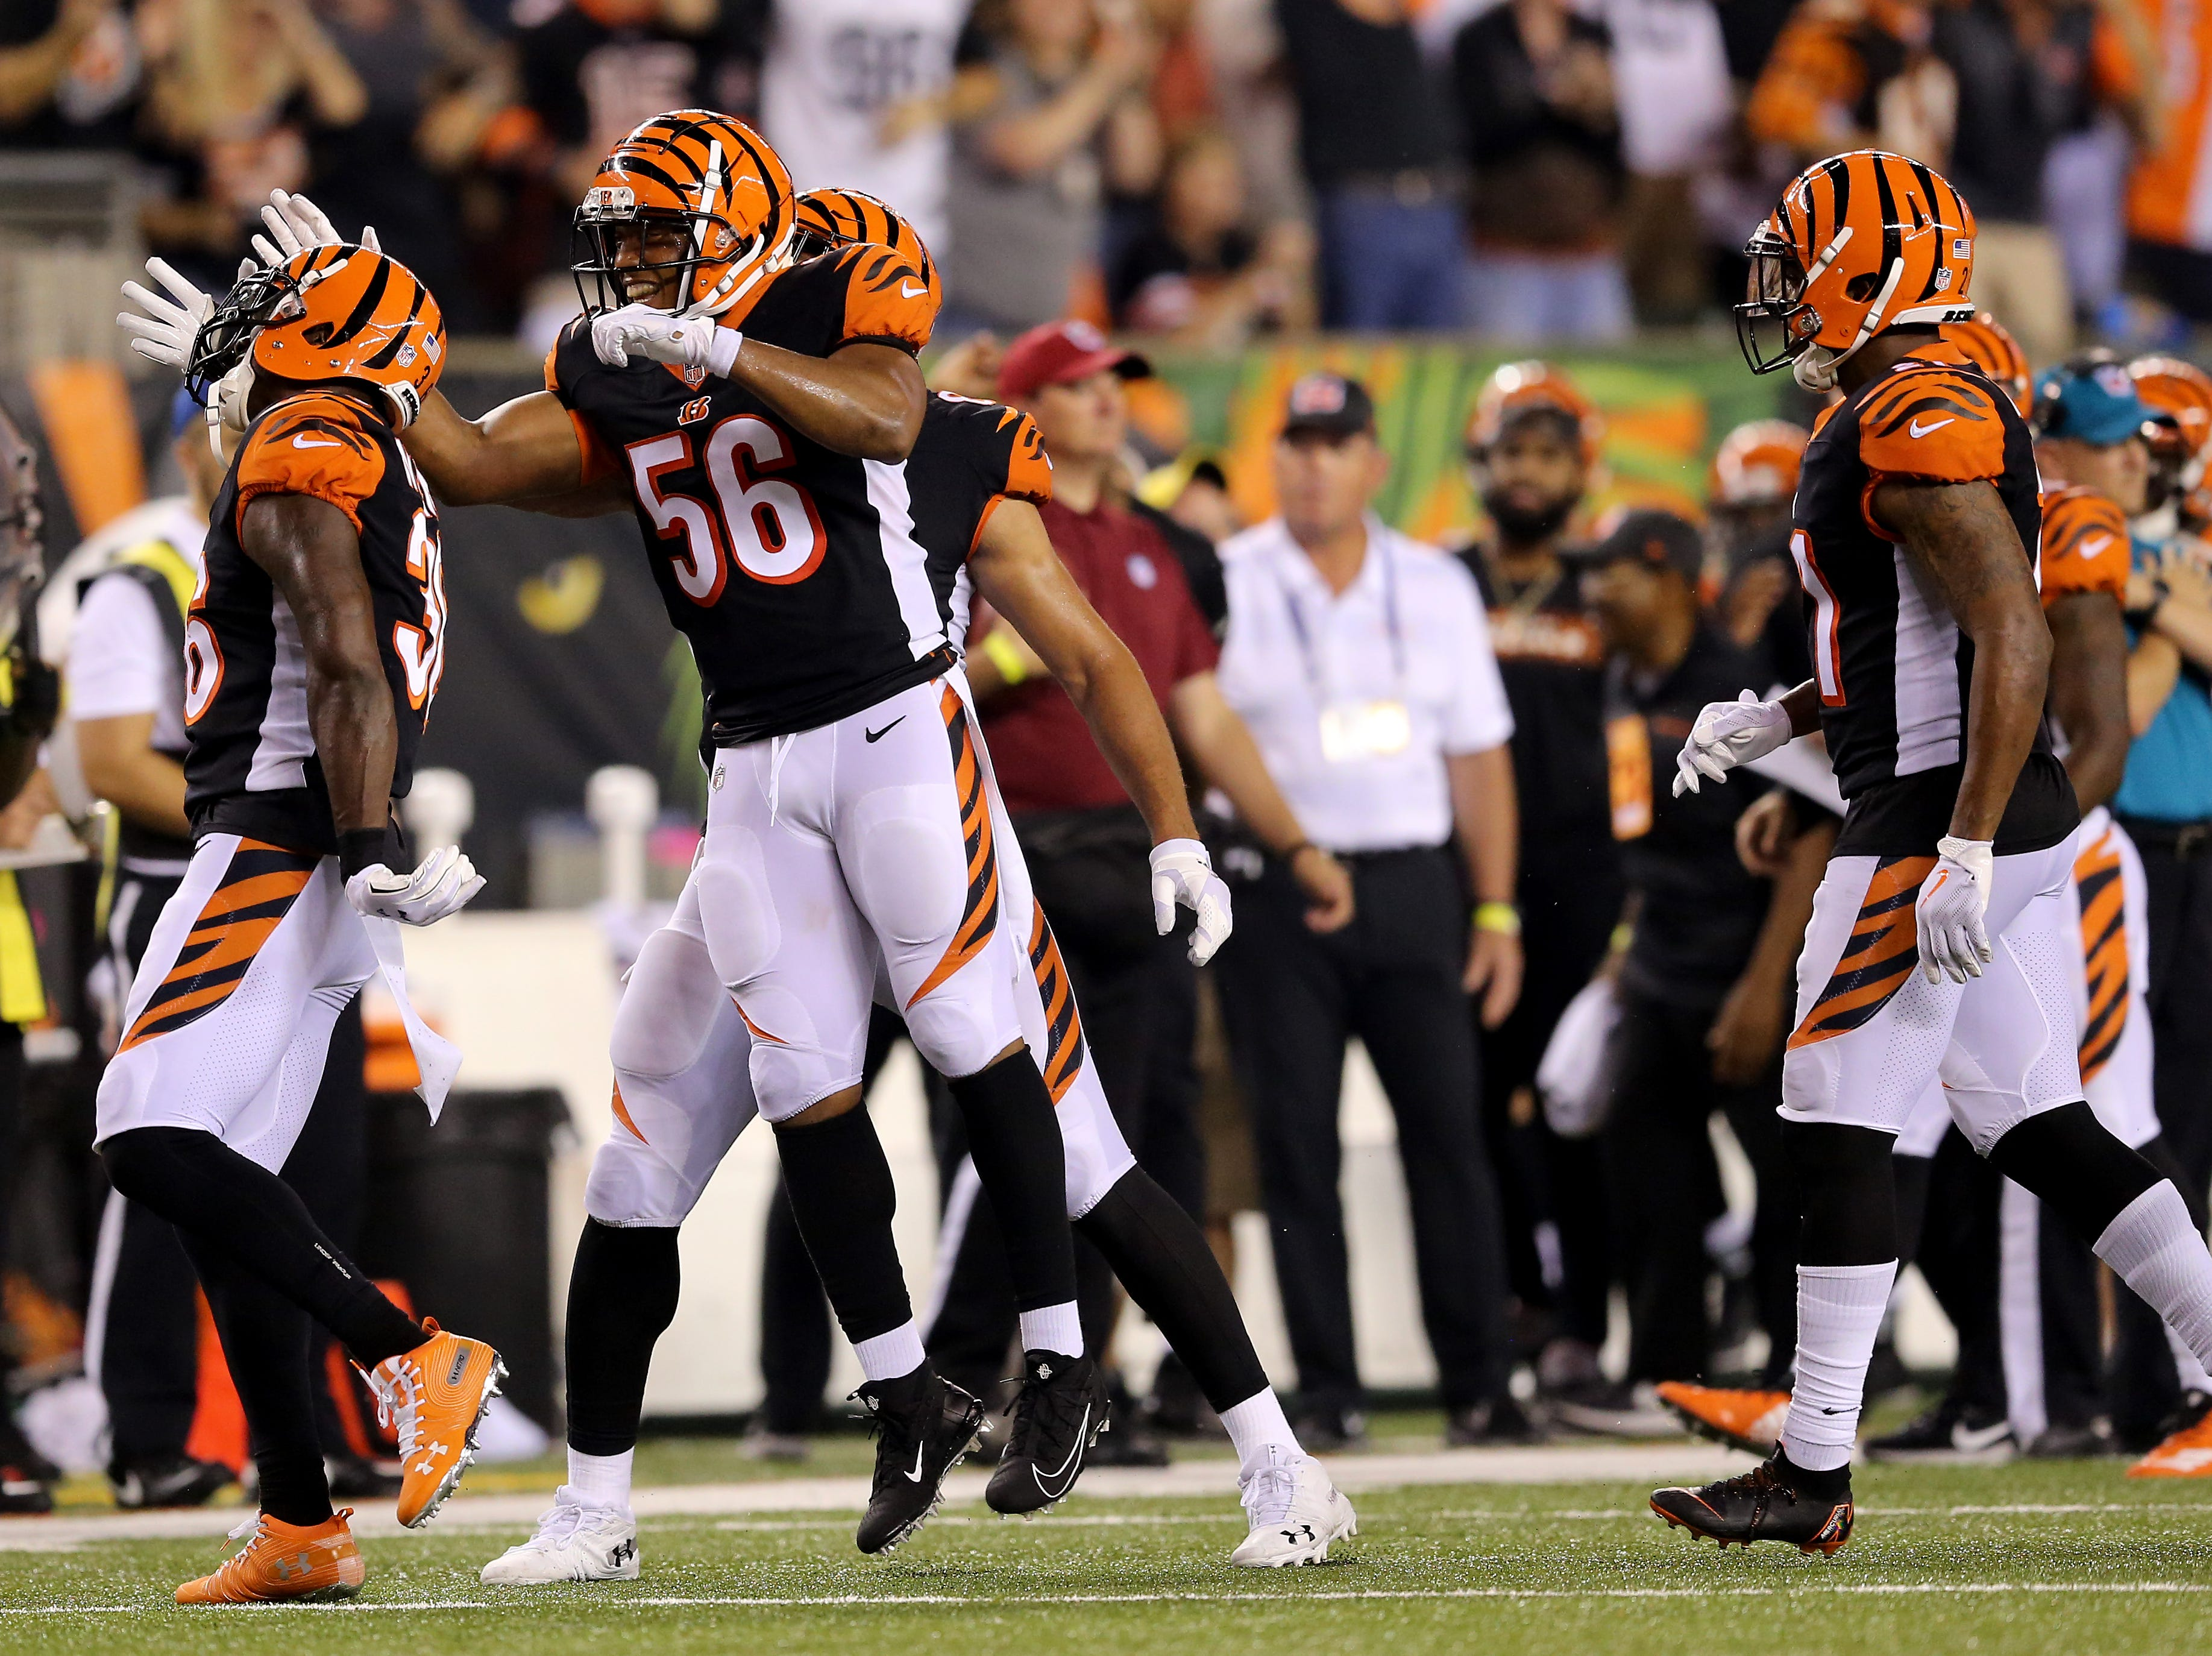 Cincinnati Bengals defensive back Shawn Williams (36), left, is congratulated by Cincinnati Bengals linebacker Hardy Nickerson (56), center, for his sack-fumble on Baltimore Ravens quarterback Joe Flacco (5) in the fourth quarter during the Week 2 NFL football game between the Baltimore Ravens and the Cincinnati Bengals, Friday, Sept. 14, 2018, Paul Brown Stadium in Cincinnati. Cincinnati won 34-23.